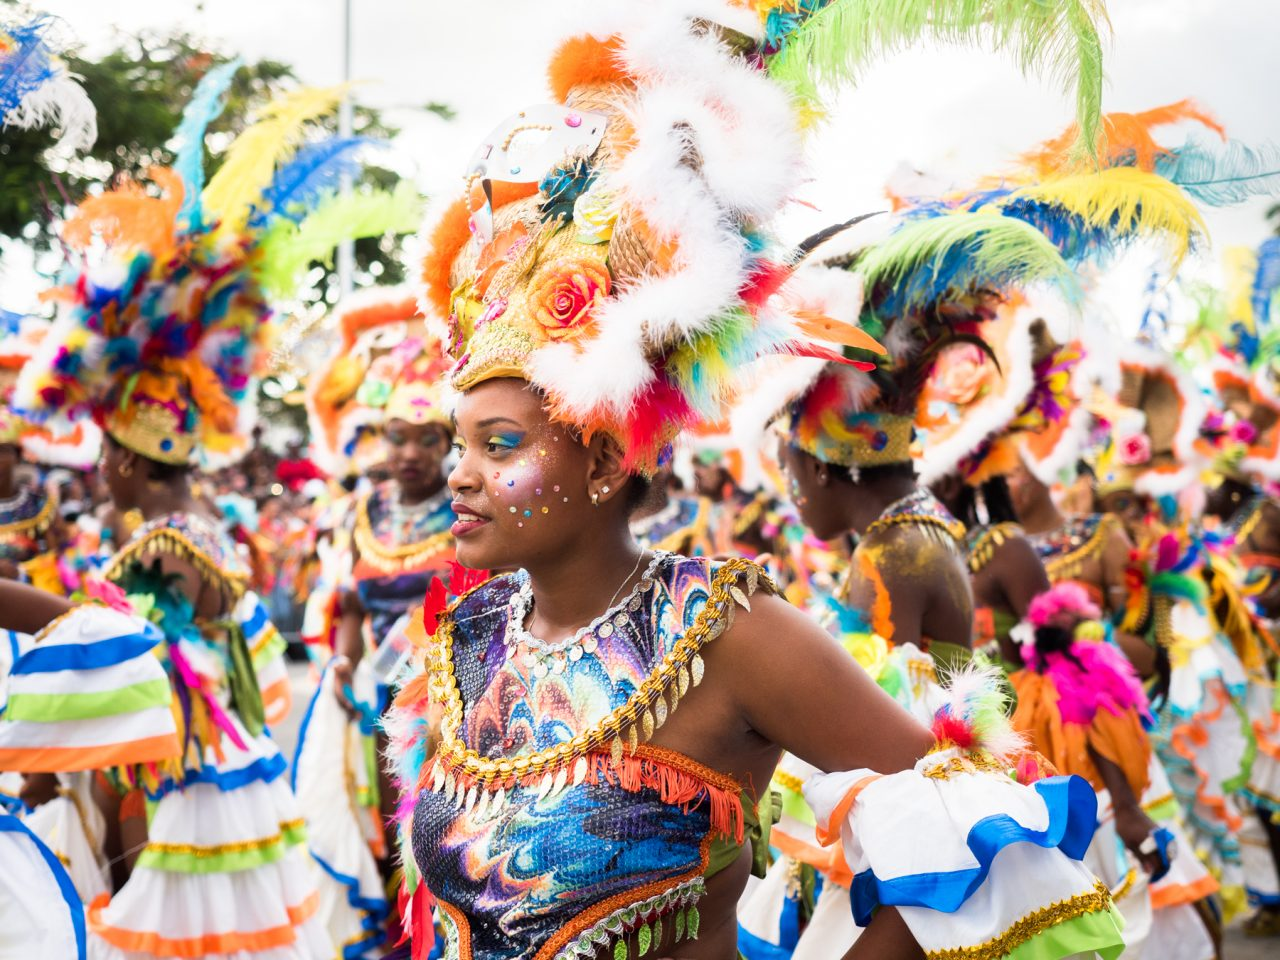 carnaval guadeloupe-musique carnaval guadeloupe-costume carnaval guadeloupe-defile carnaval guadeloupe